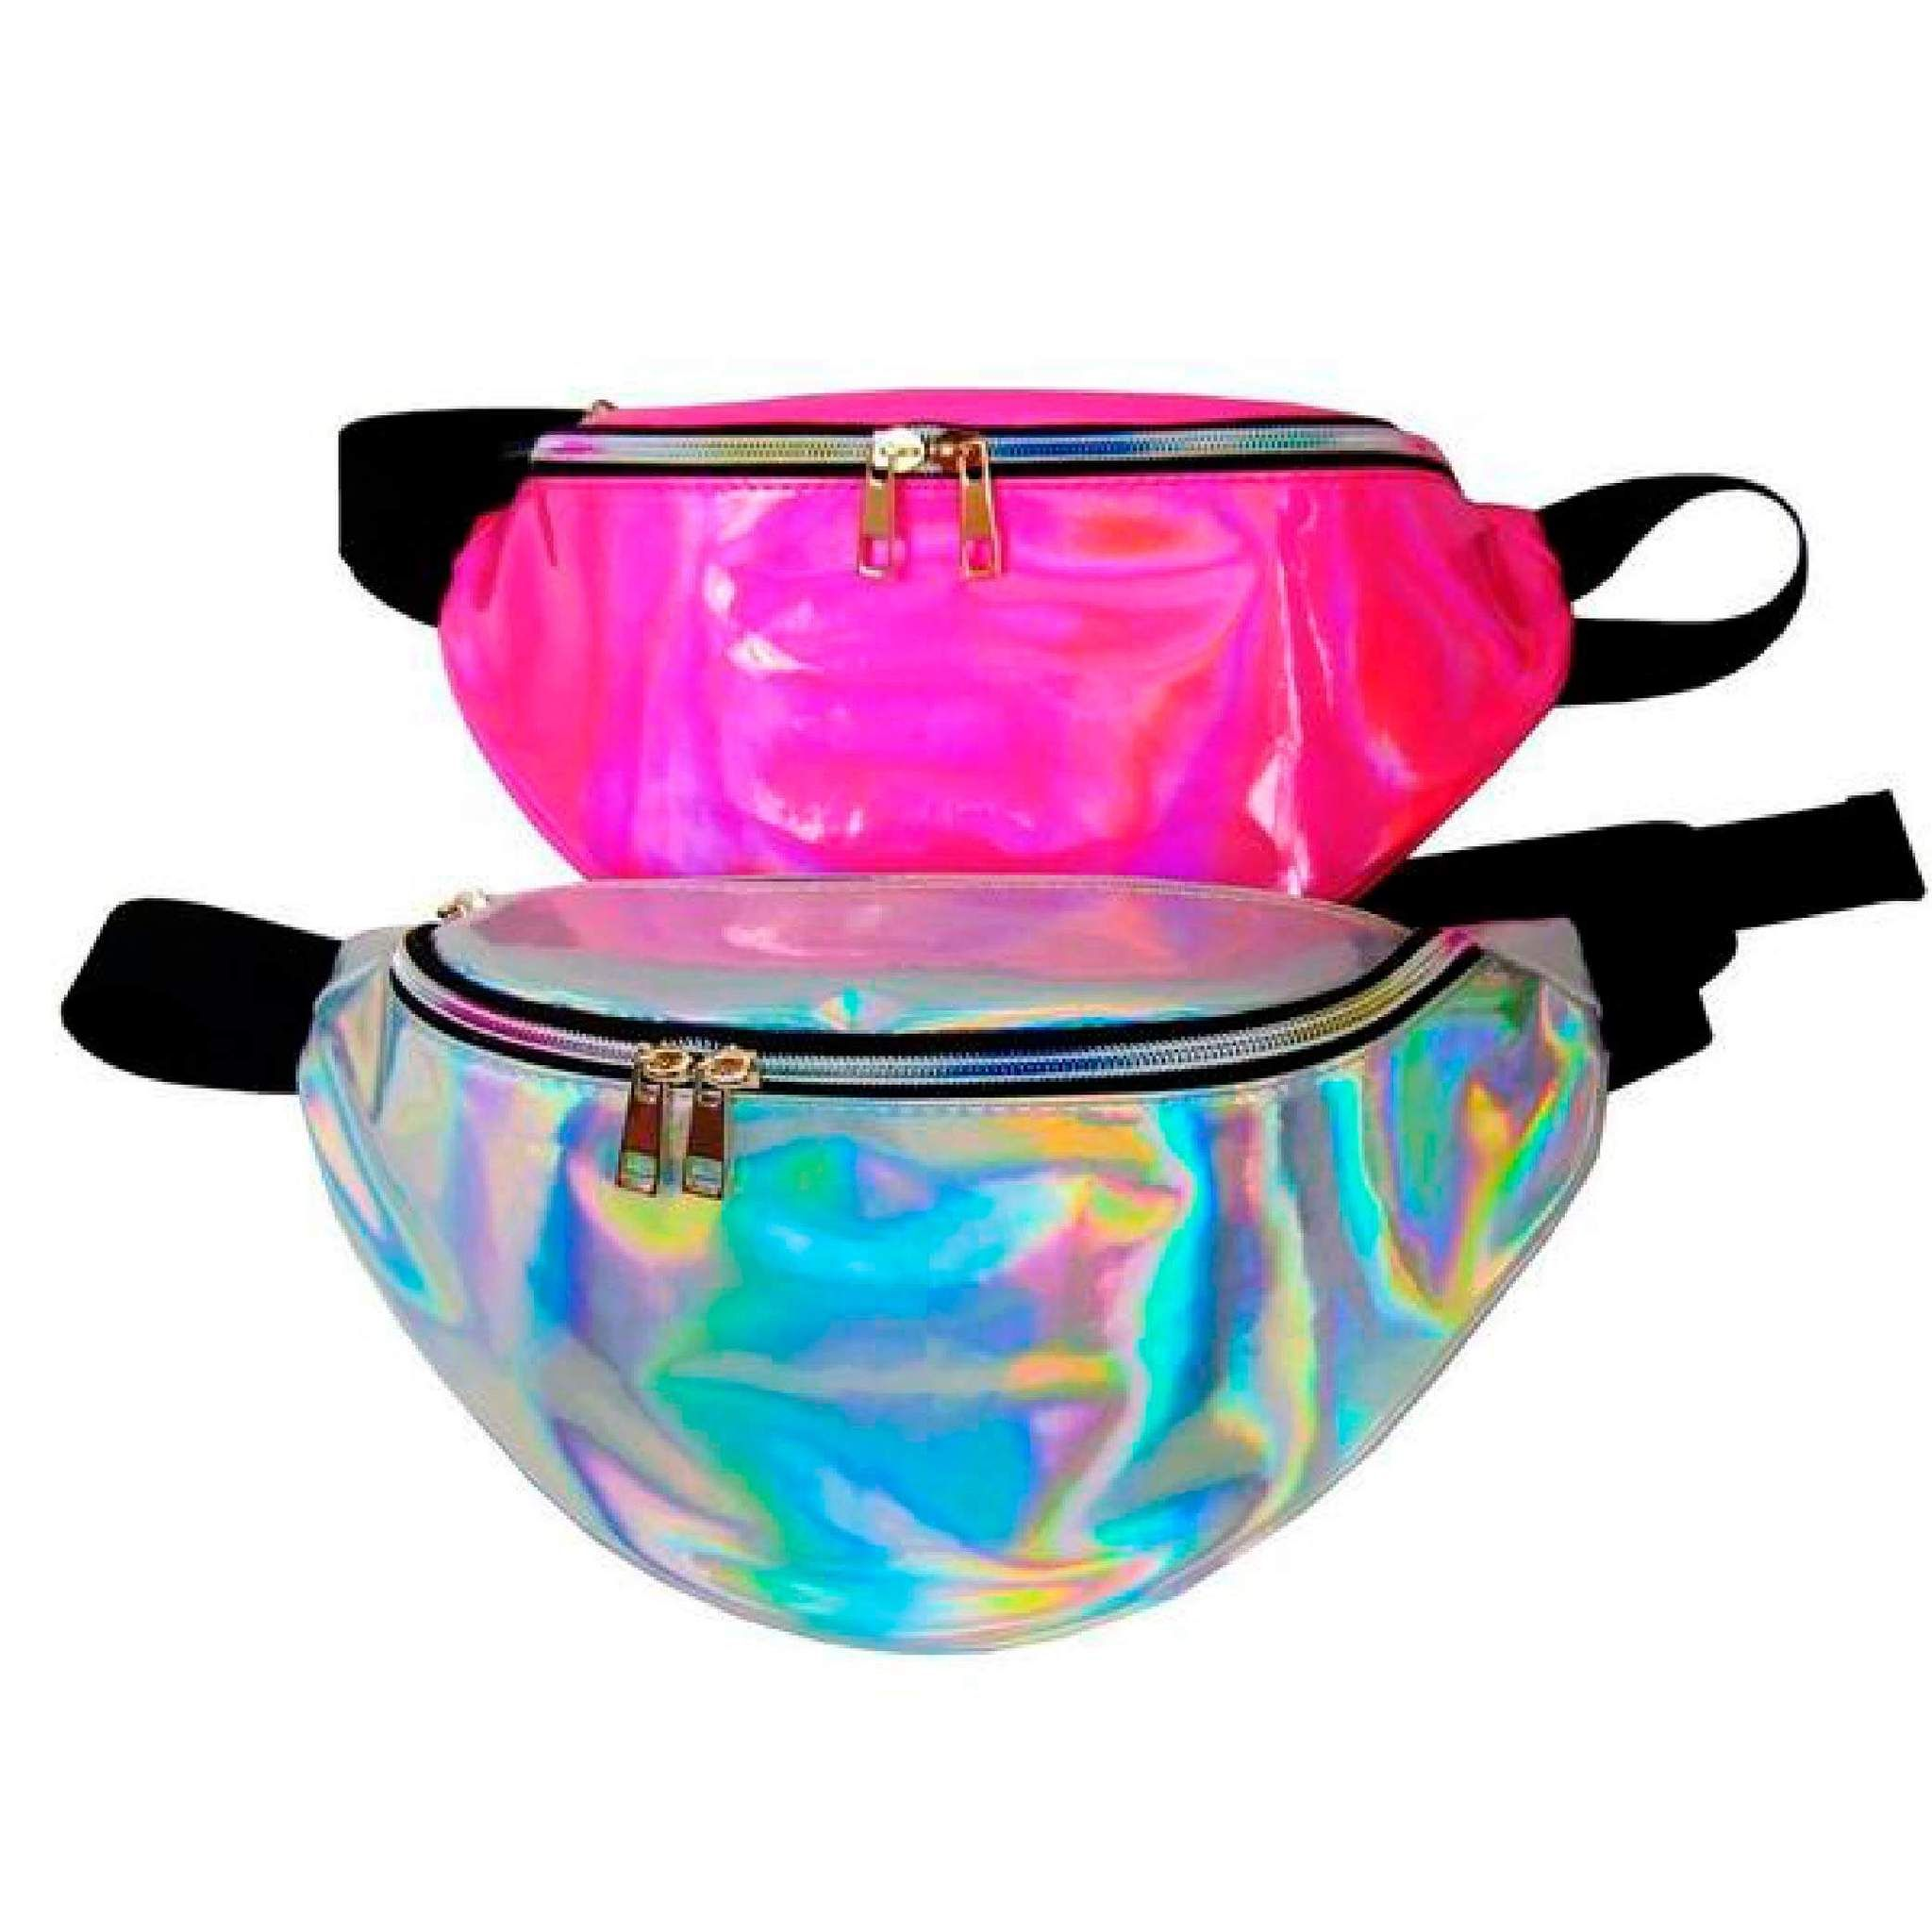 22e6bfa7dc Holographic Old-School Fanny Pack Reflective Unisex Waist Pack ...